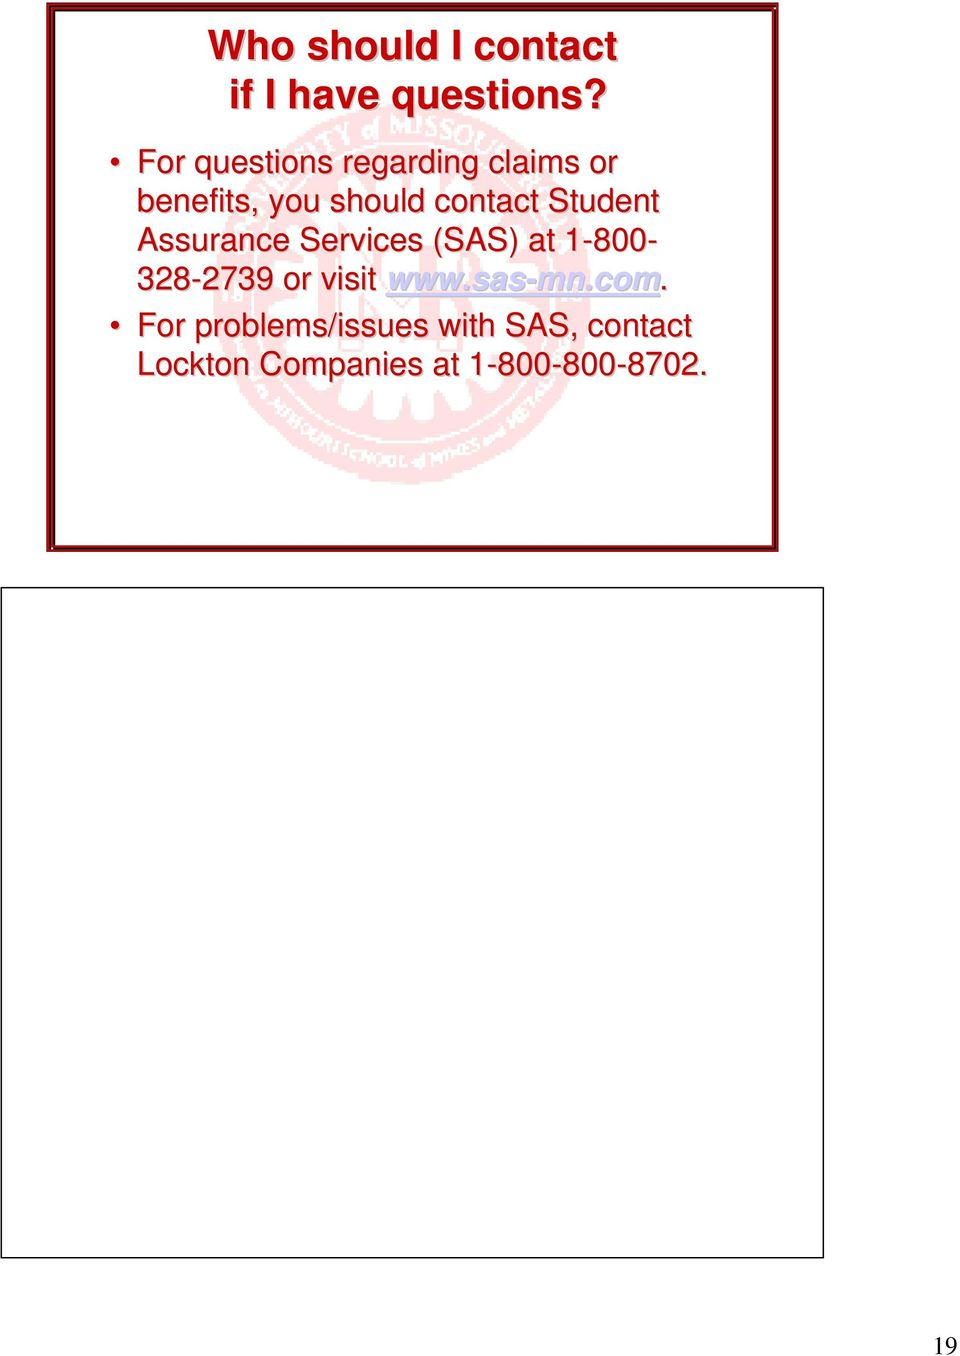 Assurance Services (SAS) at 1-8001 800-328-2739 2739 or visit www.